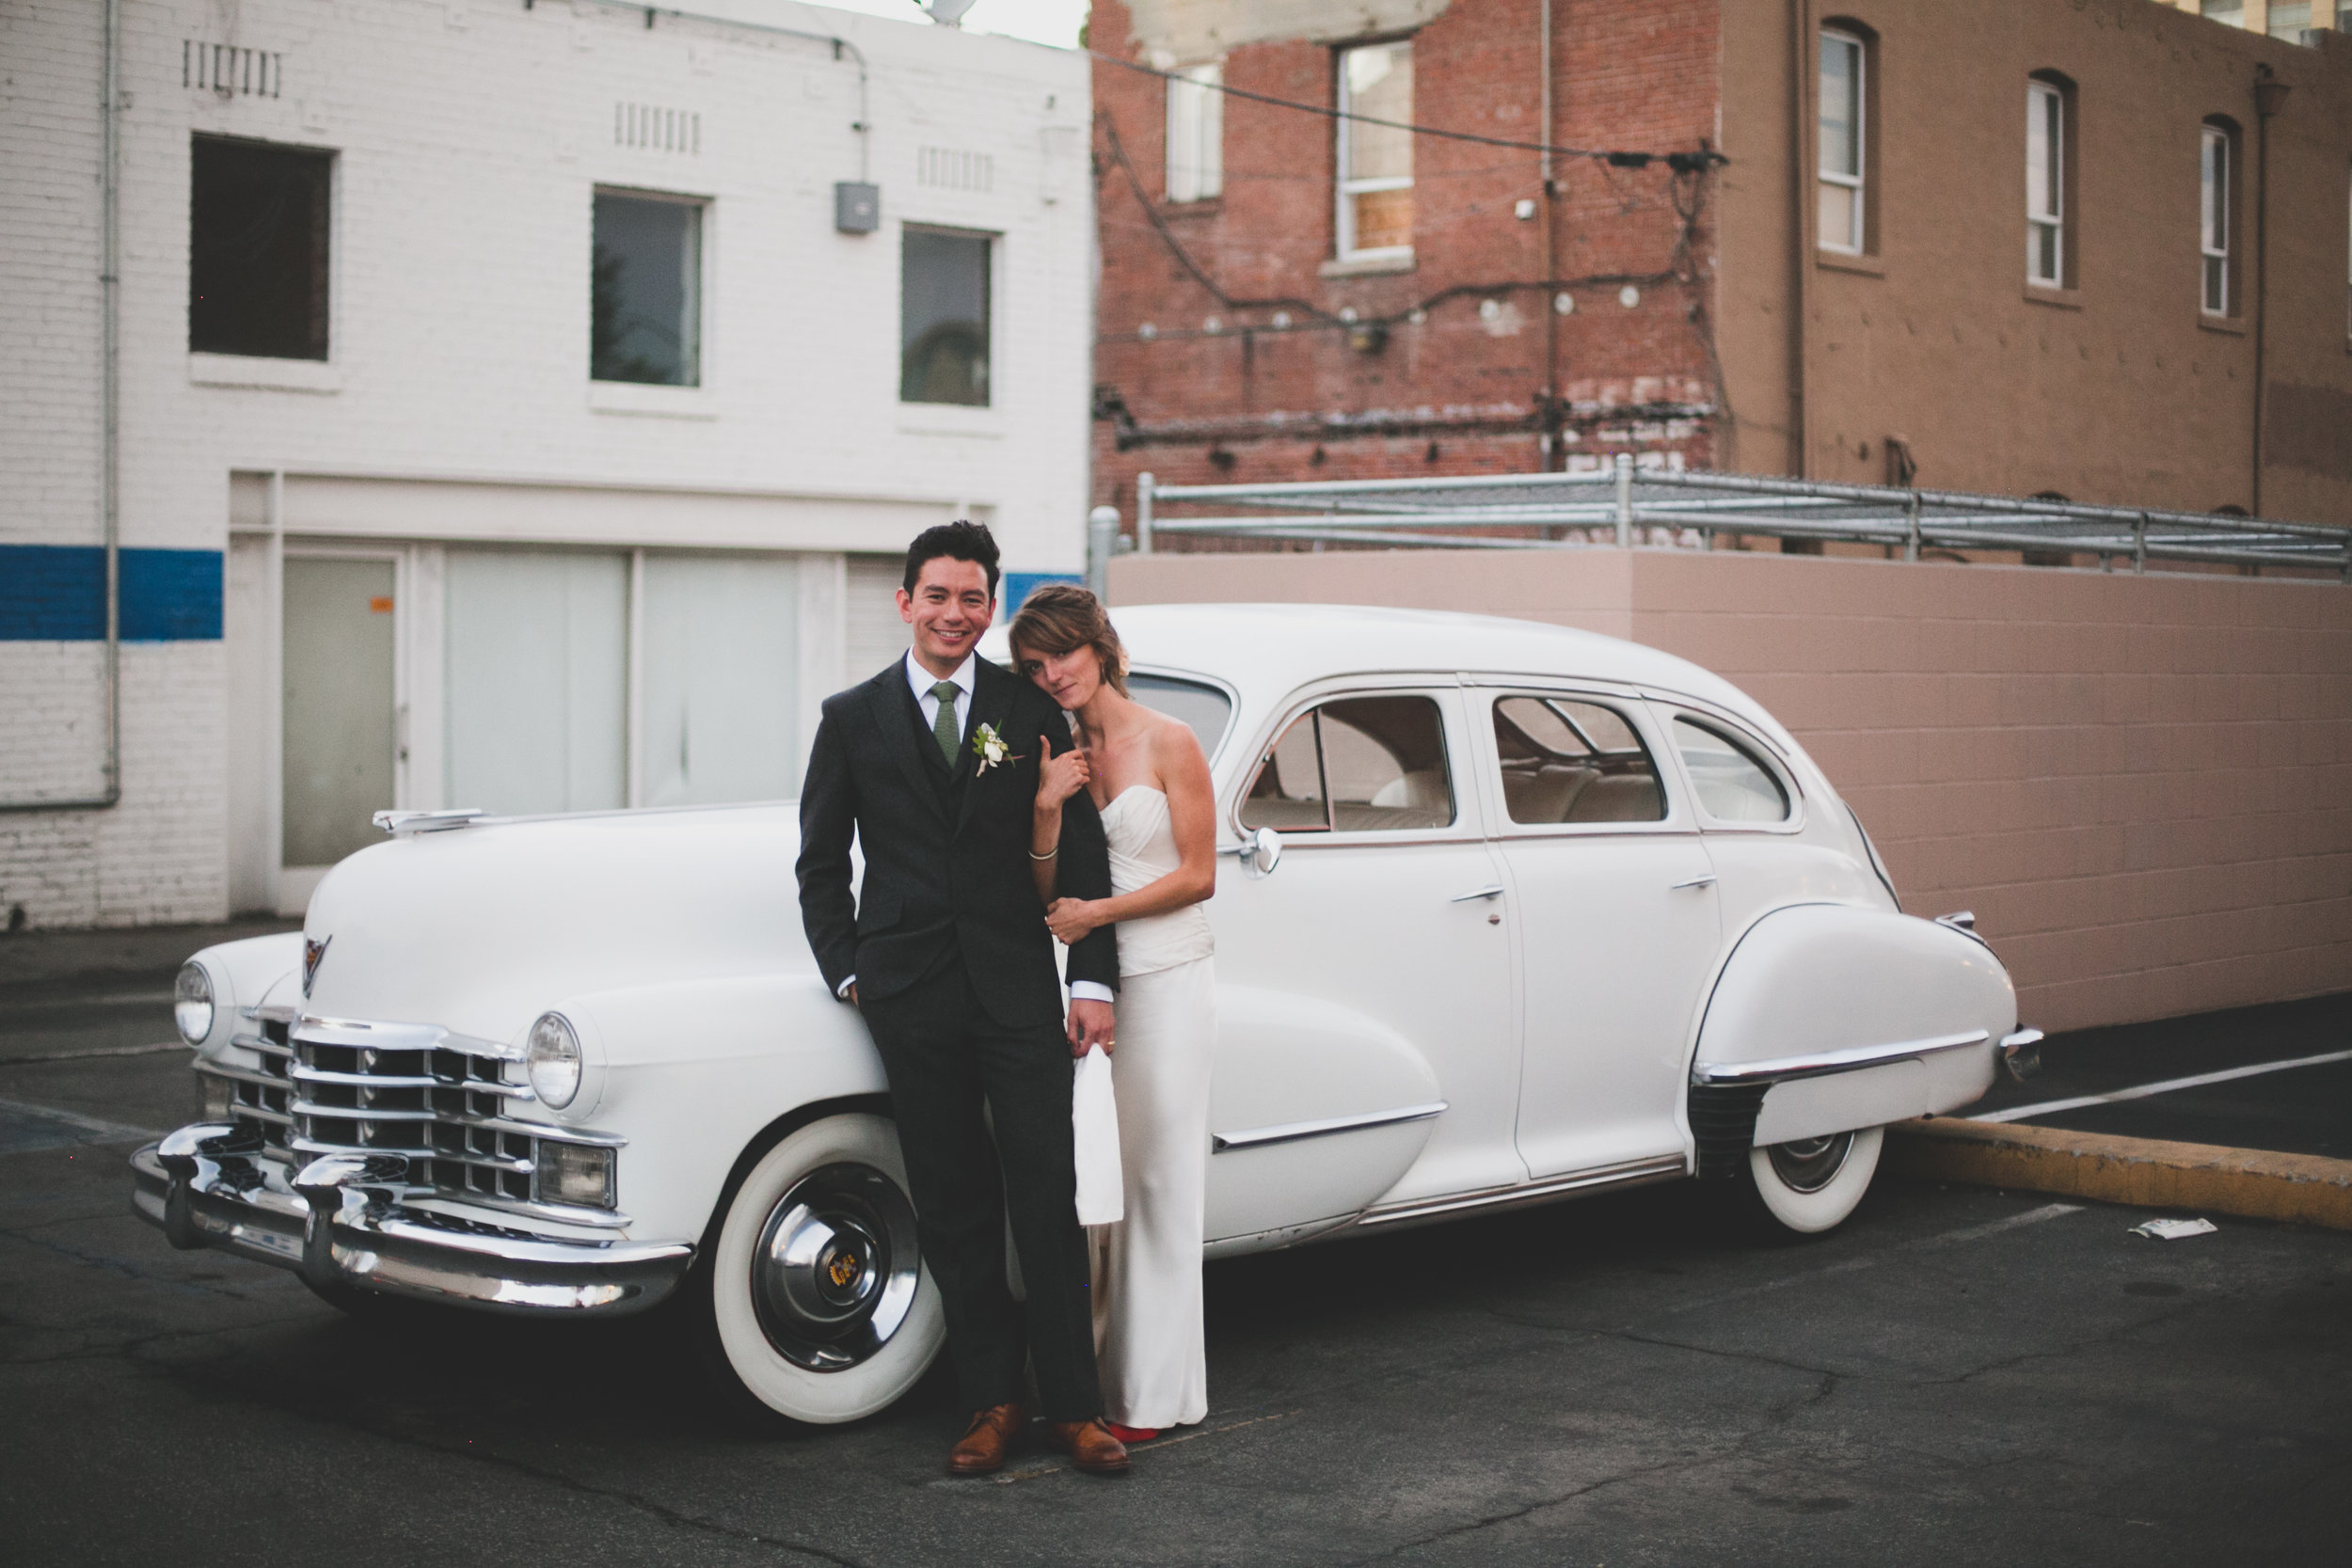 """Finding the right DJ for our wedding - was one of the most daunting tasks we faced when planning our the big day. The DJ is nearly completely responsible for the """"fun"""" part of the night. When we met JP, though, we knew he was the man for the job."""